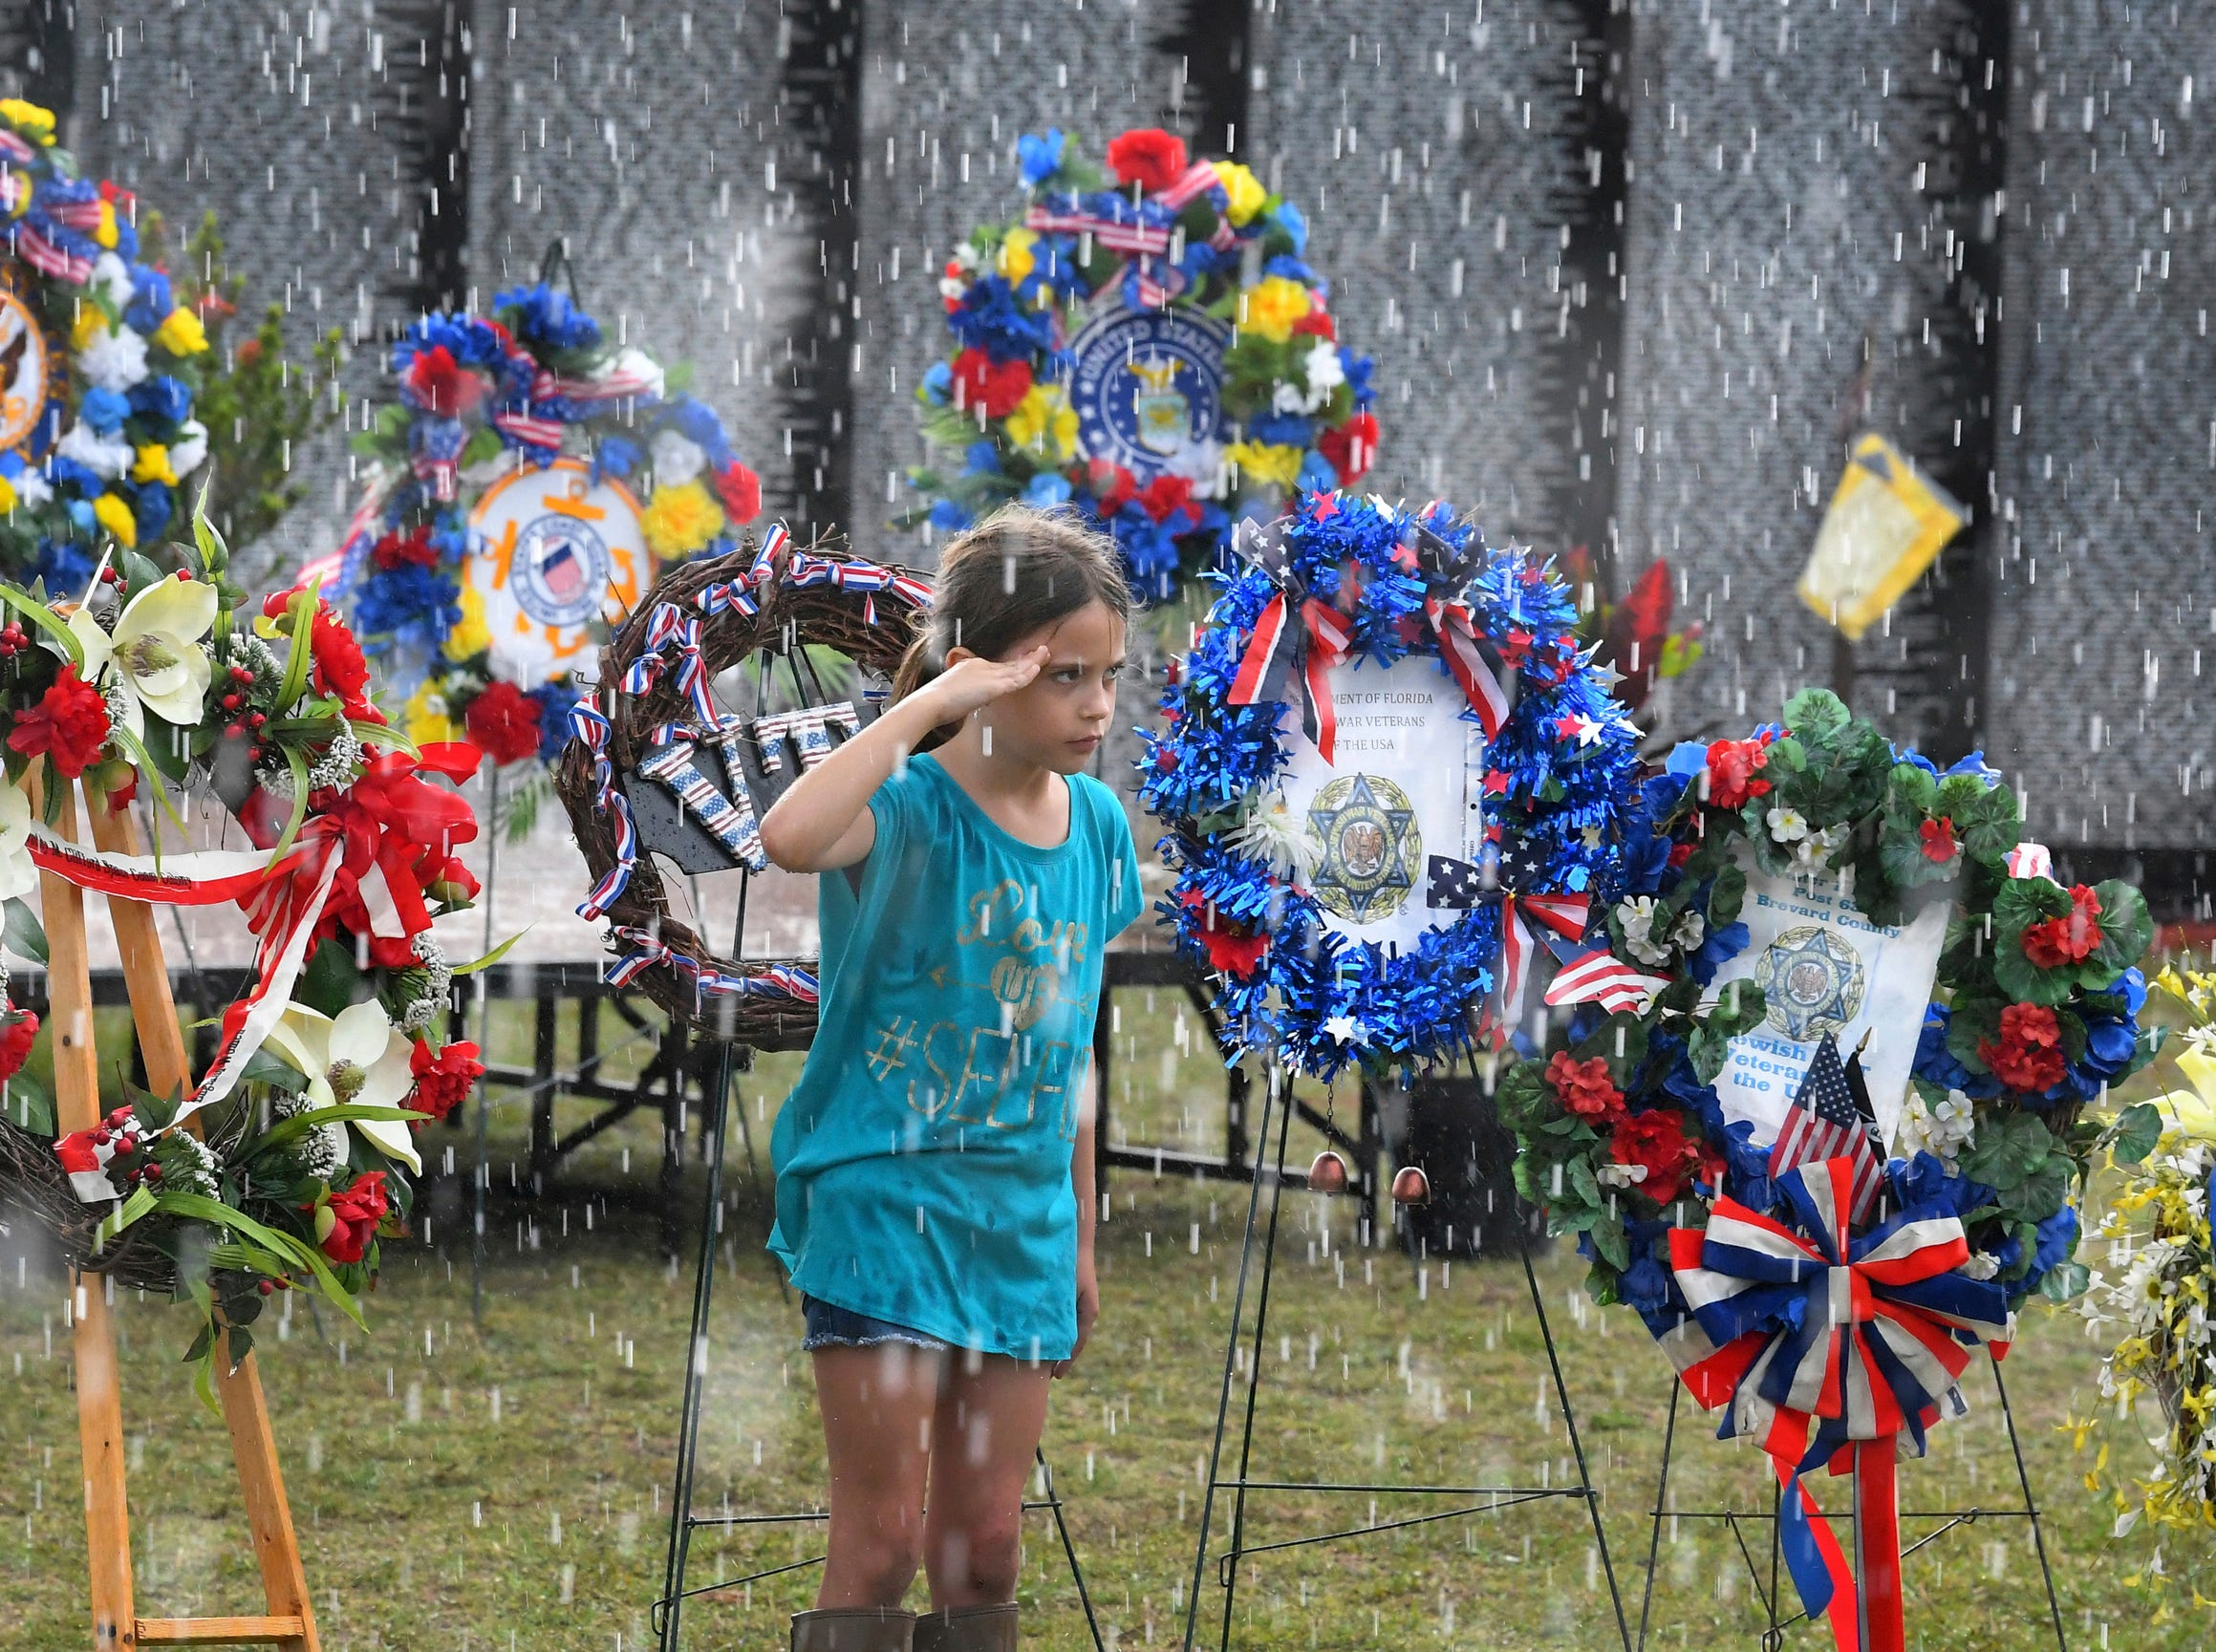 Eight-year-old Ajalynn Fields salutes in front of the wreath for the Veterans Transitional Facility, Monday, May 6, 2019, in Melbourne, Fla., during the presentation of wreaths and an opening ceremony at the Vietnam Traveling Memorial Wall, which will be up until May 12. It is part of the 32nd Annual Vietnam and All Veterans Reunion, a free event open to the public at Wickham Park in Melbourne May 9-12.